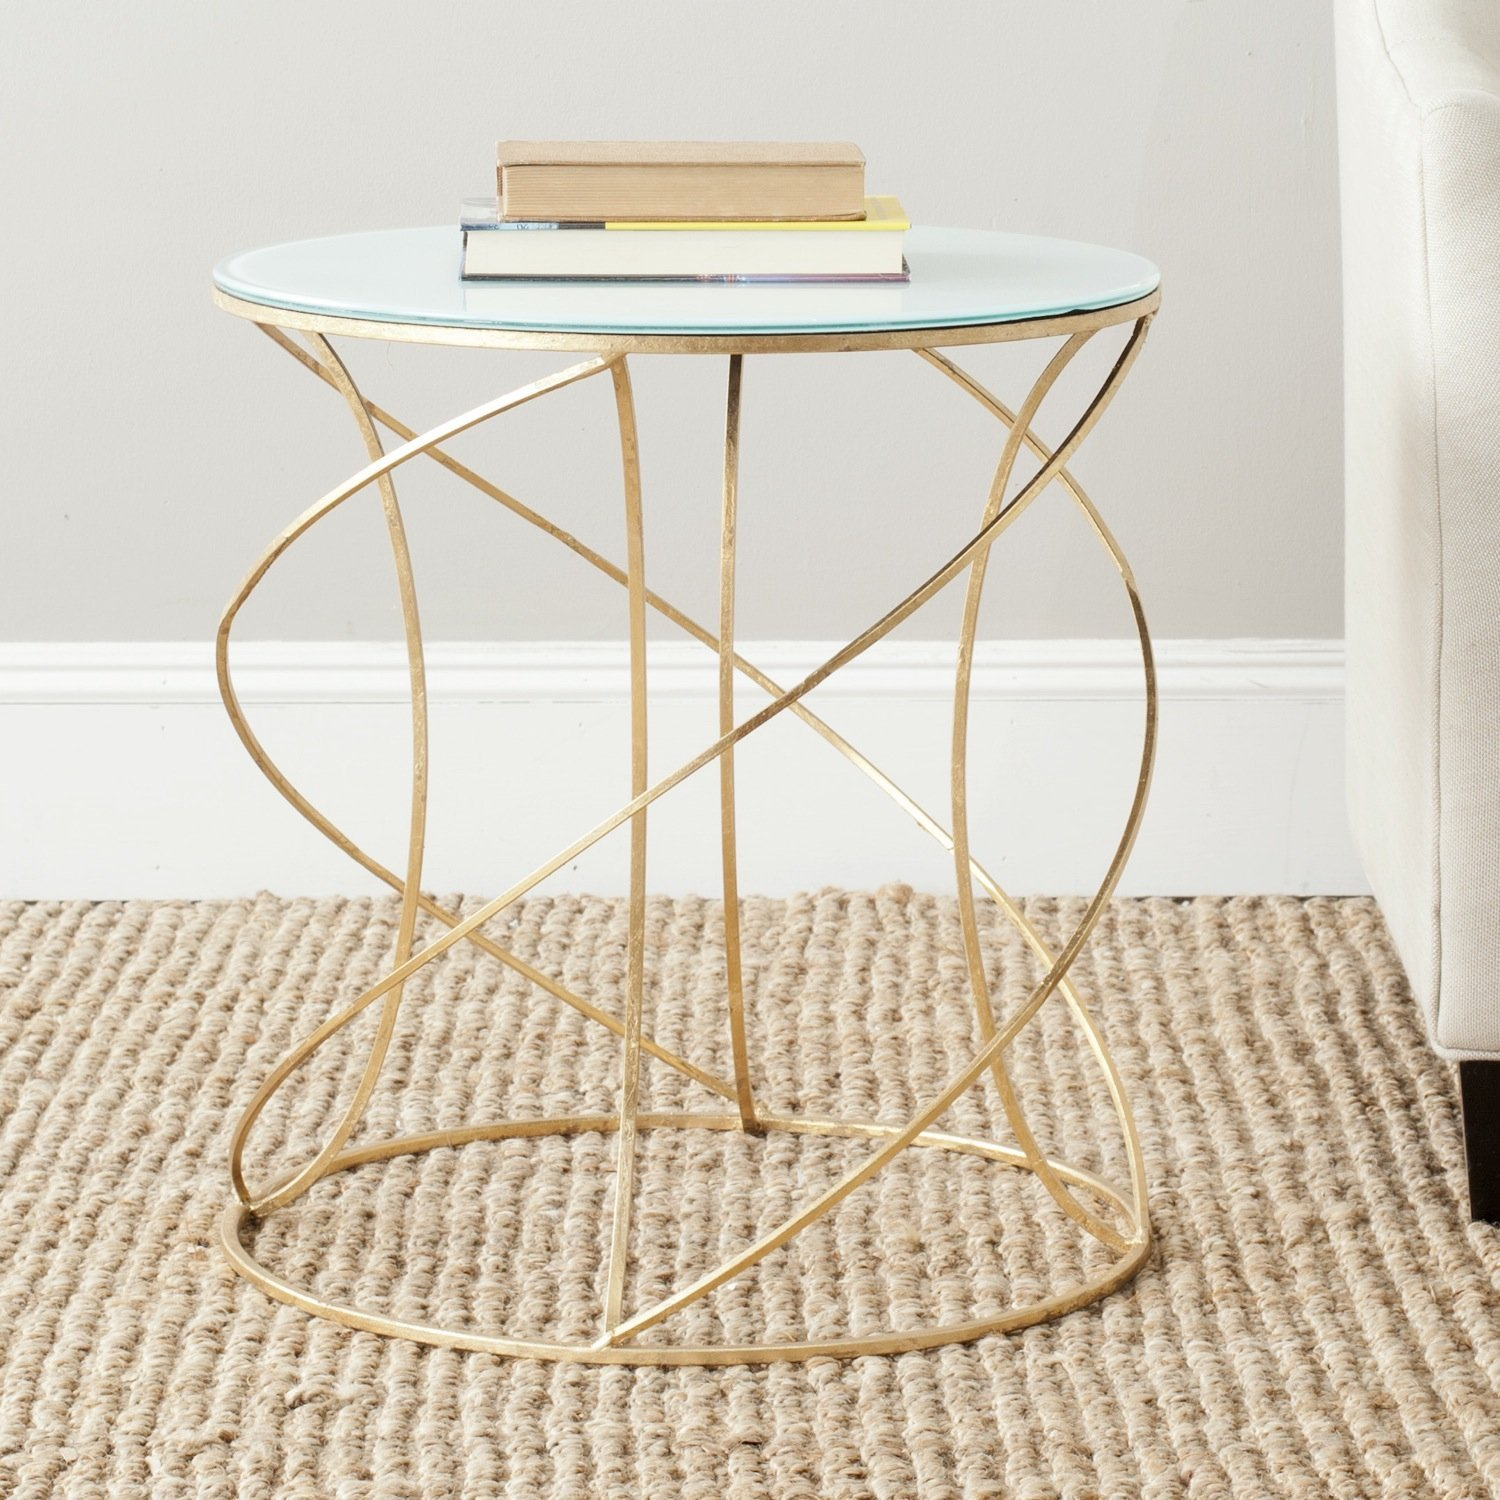 multipurpose round metal accent table the lucky design indoor side tables ikea wood and coca cola floor lamp inch height end definition tablecloths napkins white distressed coffee